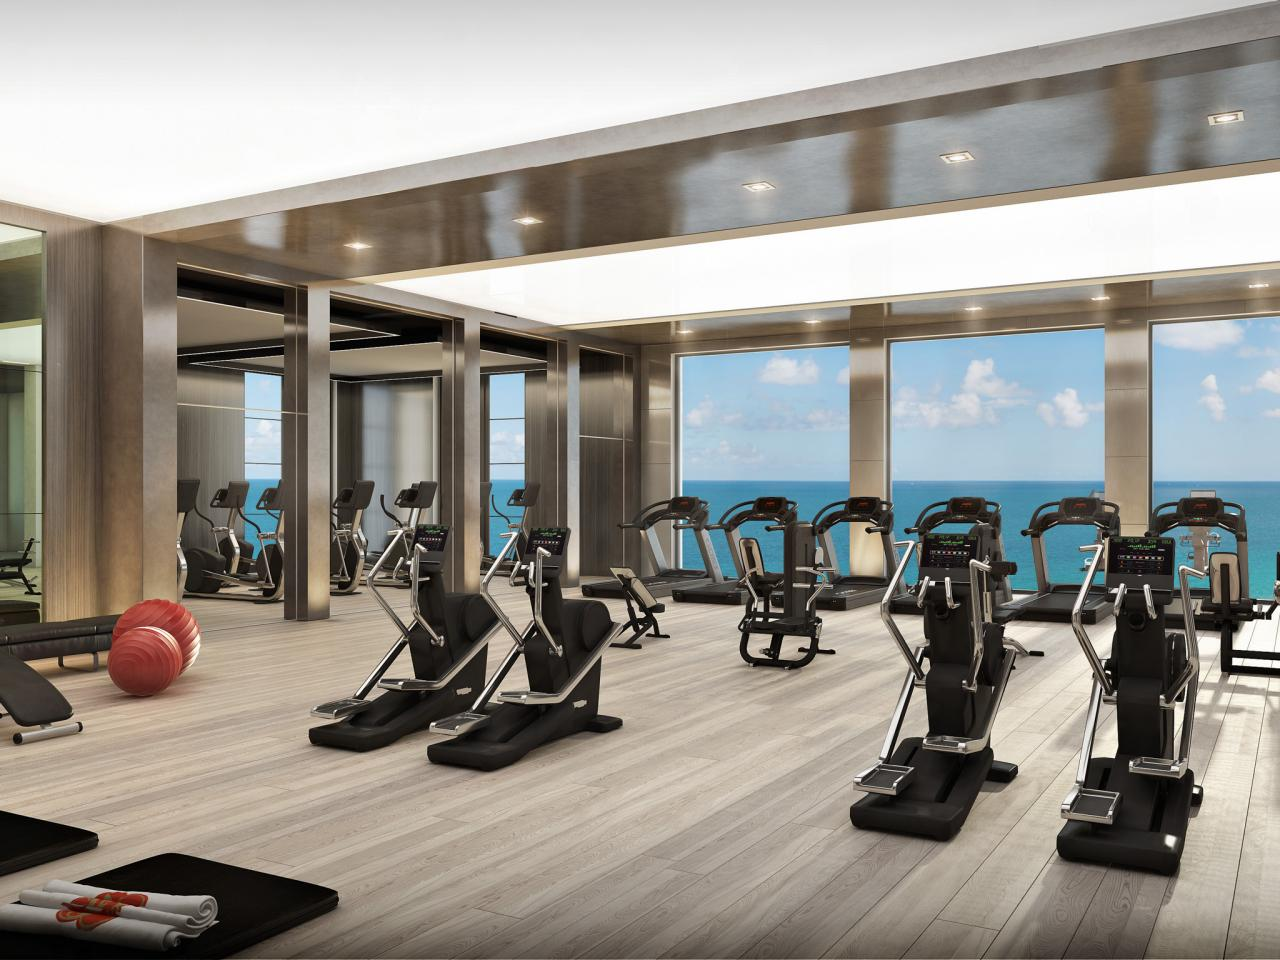 Designer Fitness Centers That Will Make You Actually Want